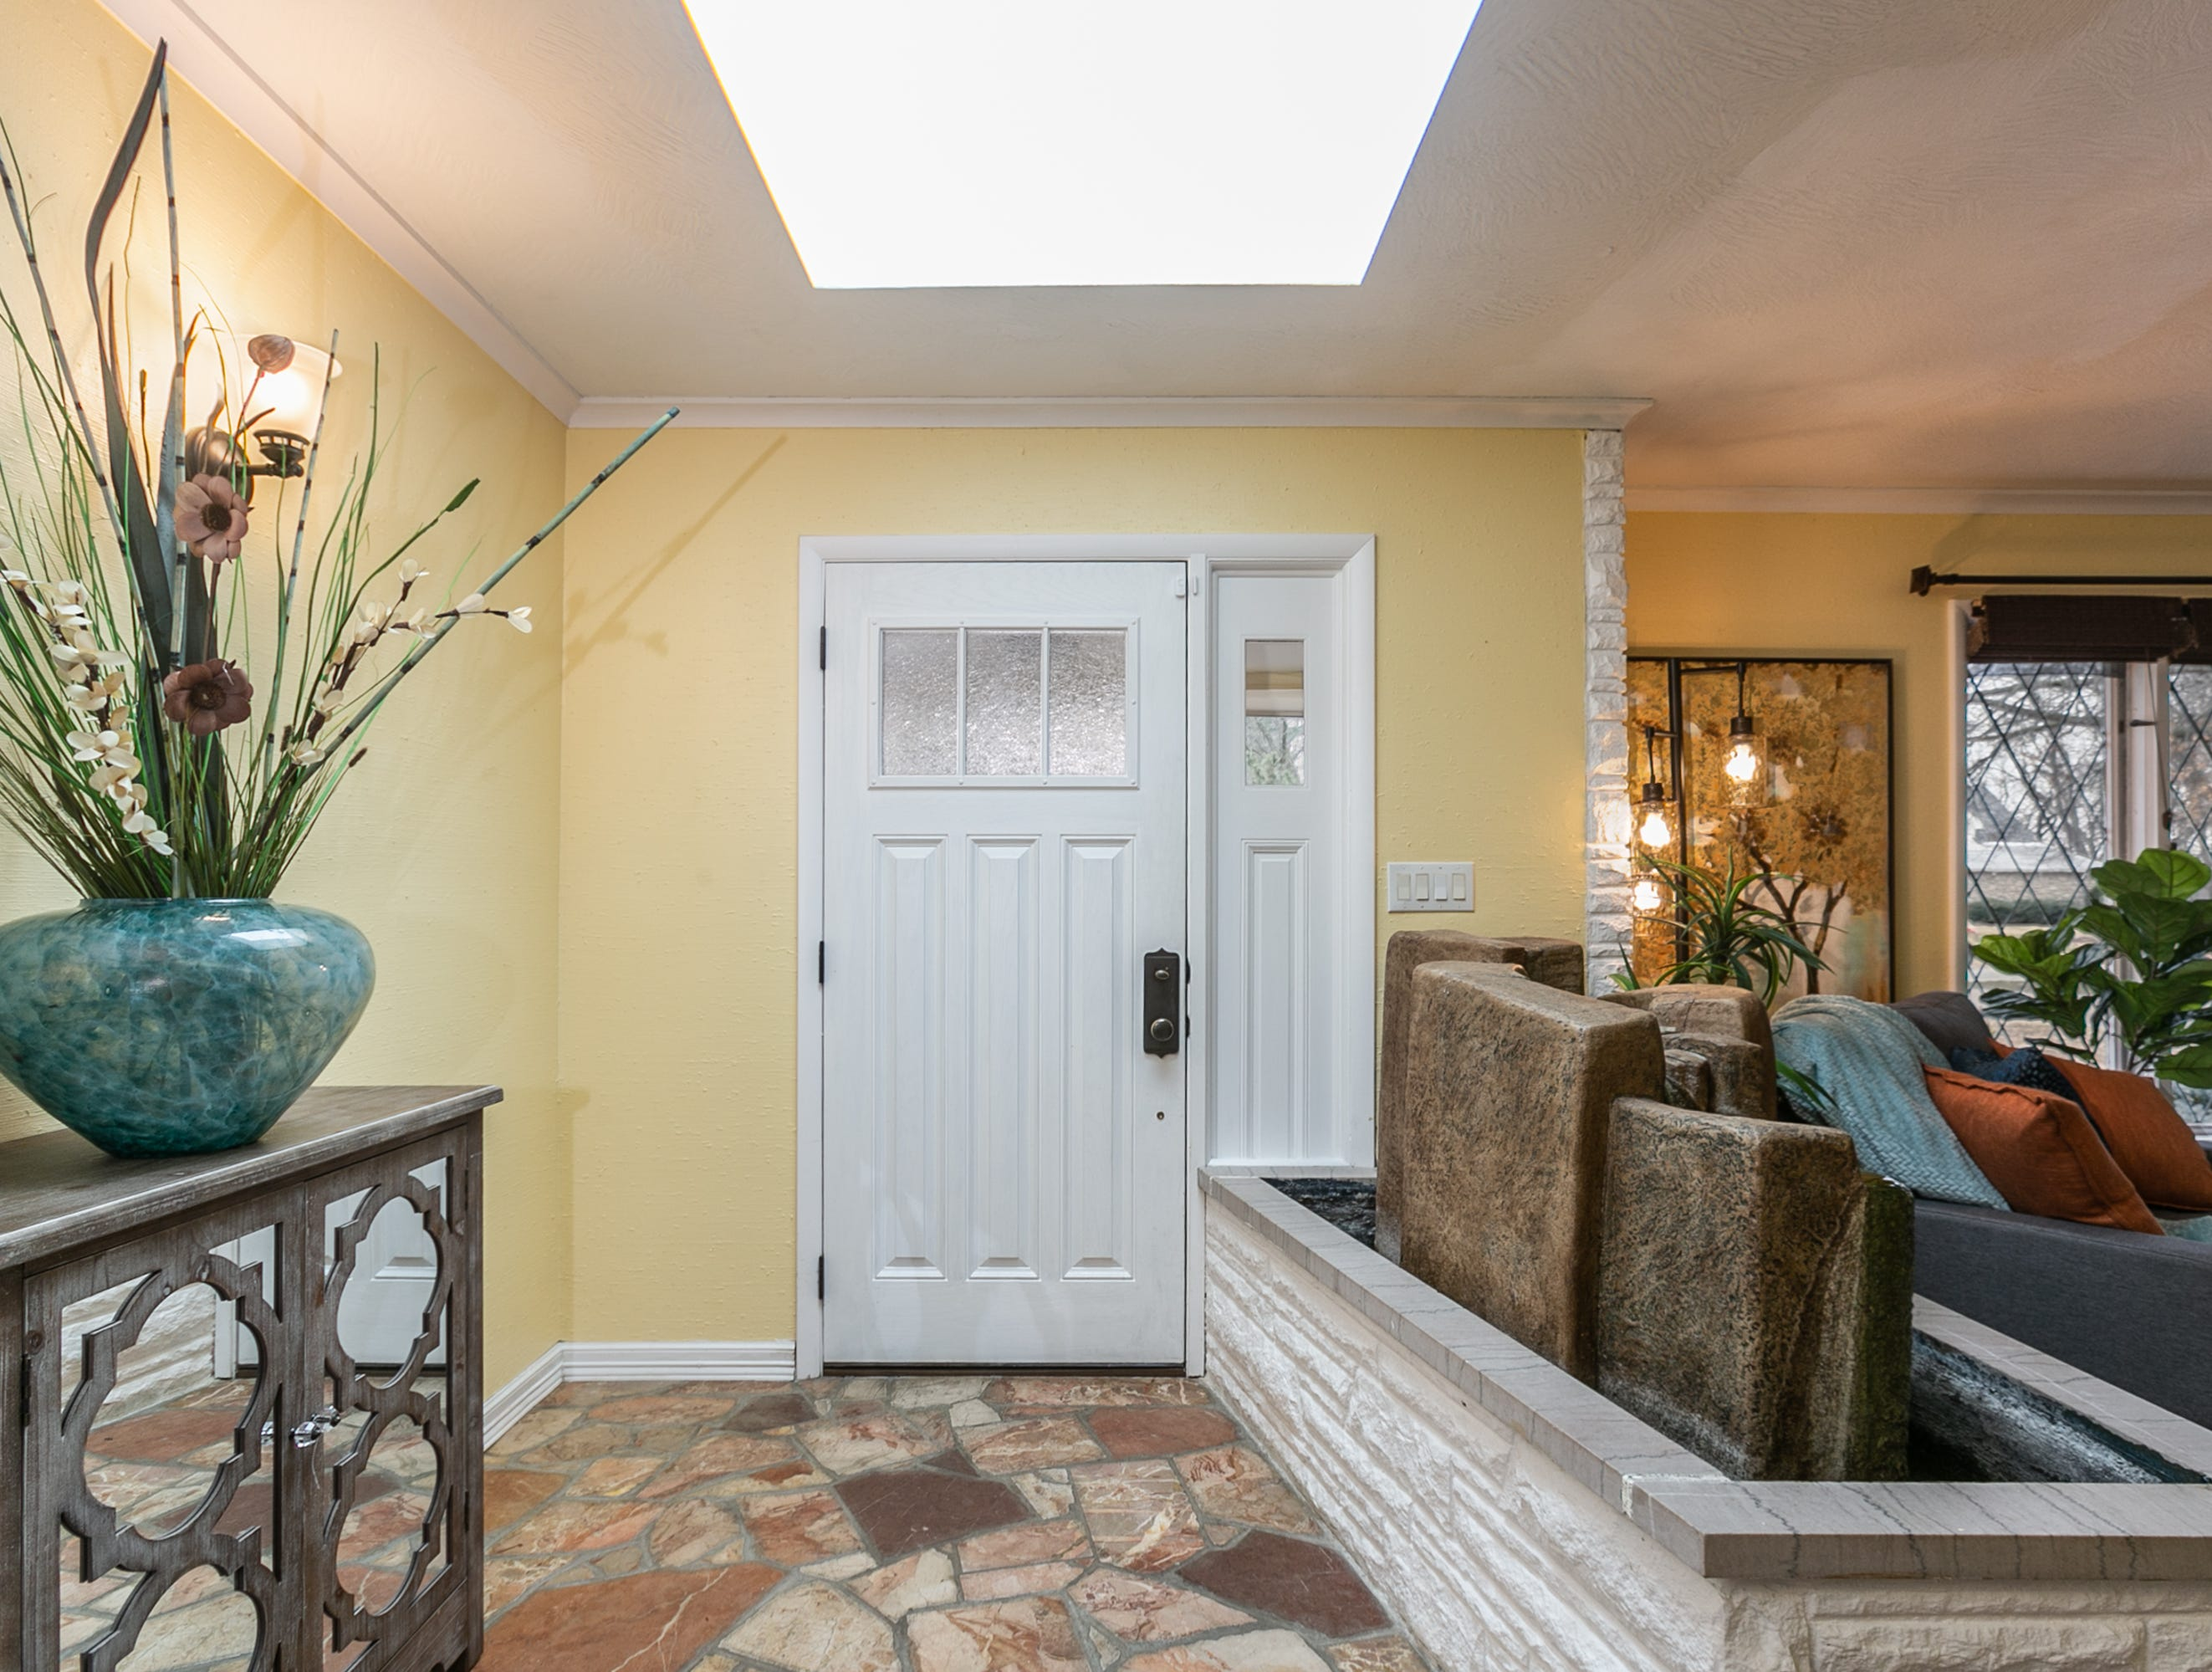 The entryway features the original marble flagstone floor and a planter that has been transformed into a water feature.